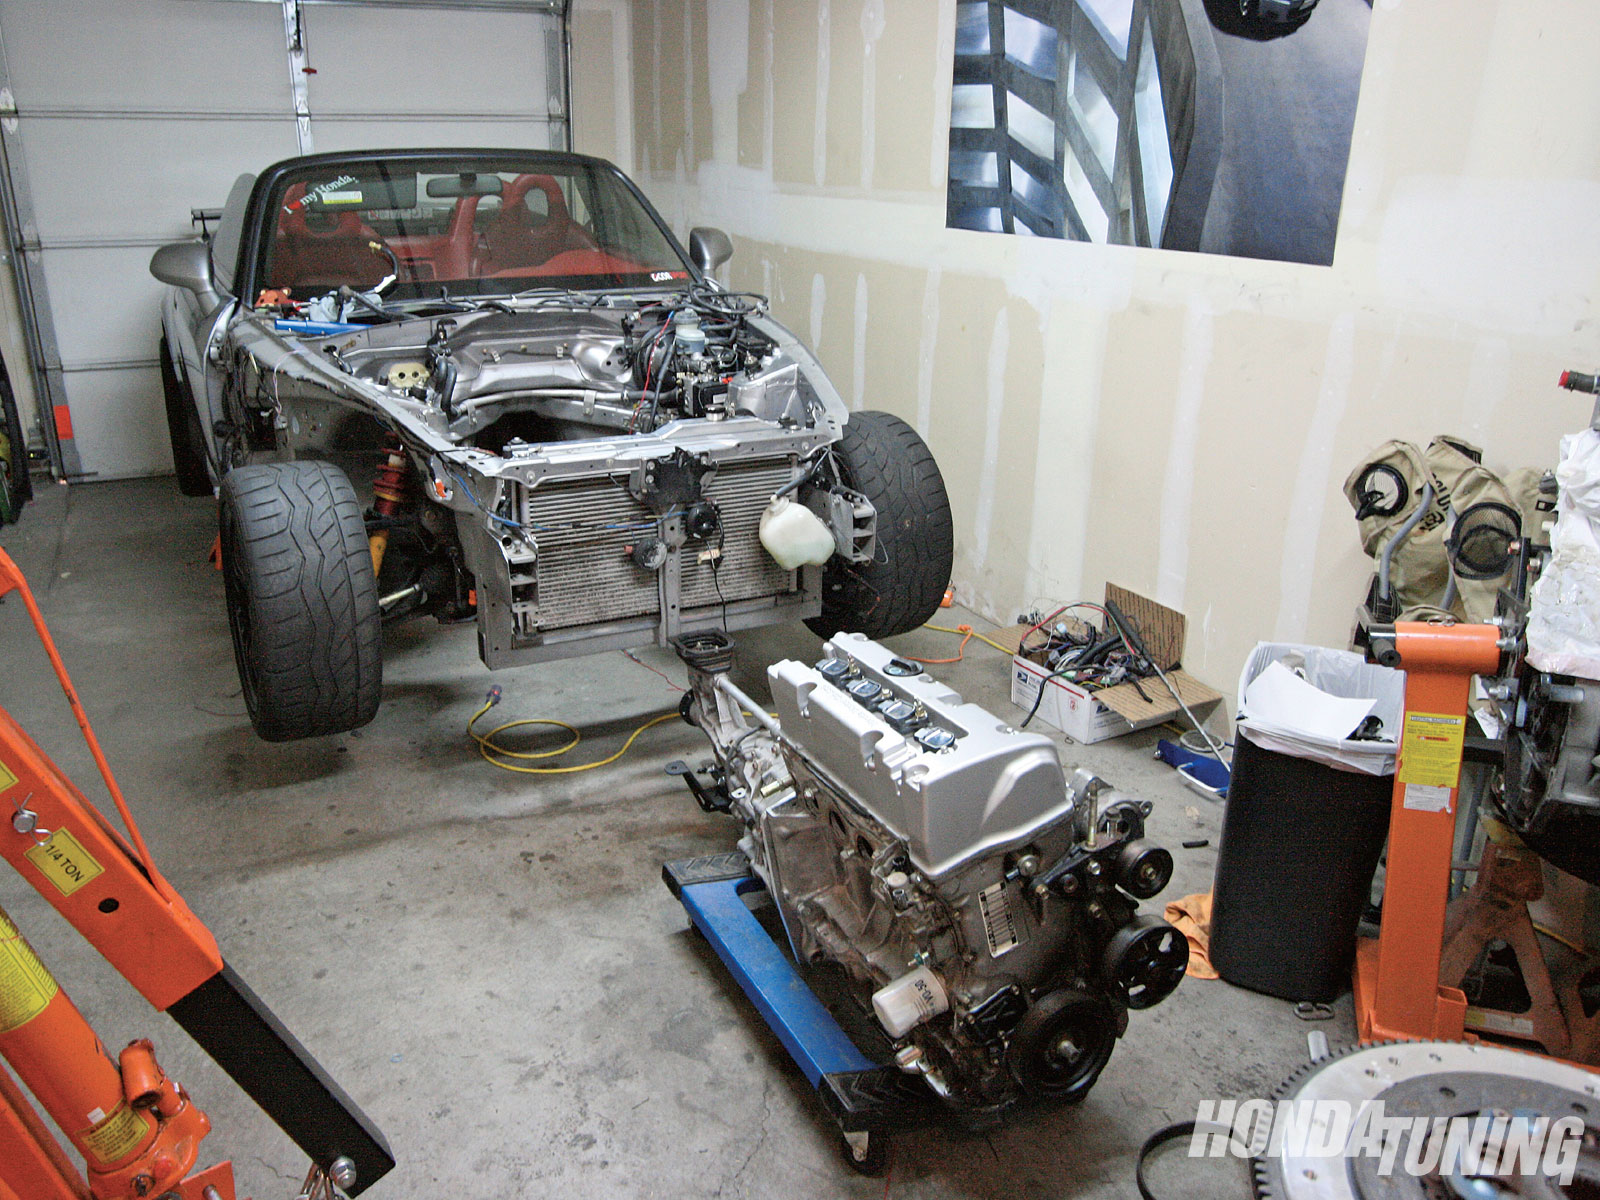 htup 1010 01 o k24 swap into s2000 chassis s2000 chassis htup 1010 k24 into s2000 chassis swap [ 1600 x 1200 Pixel ]